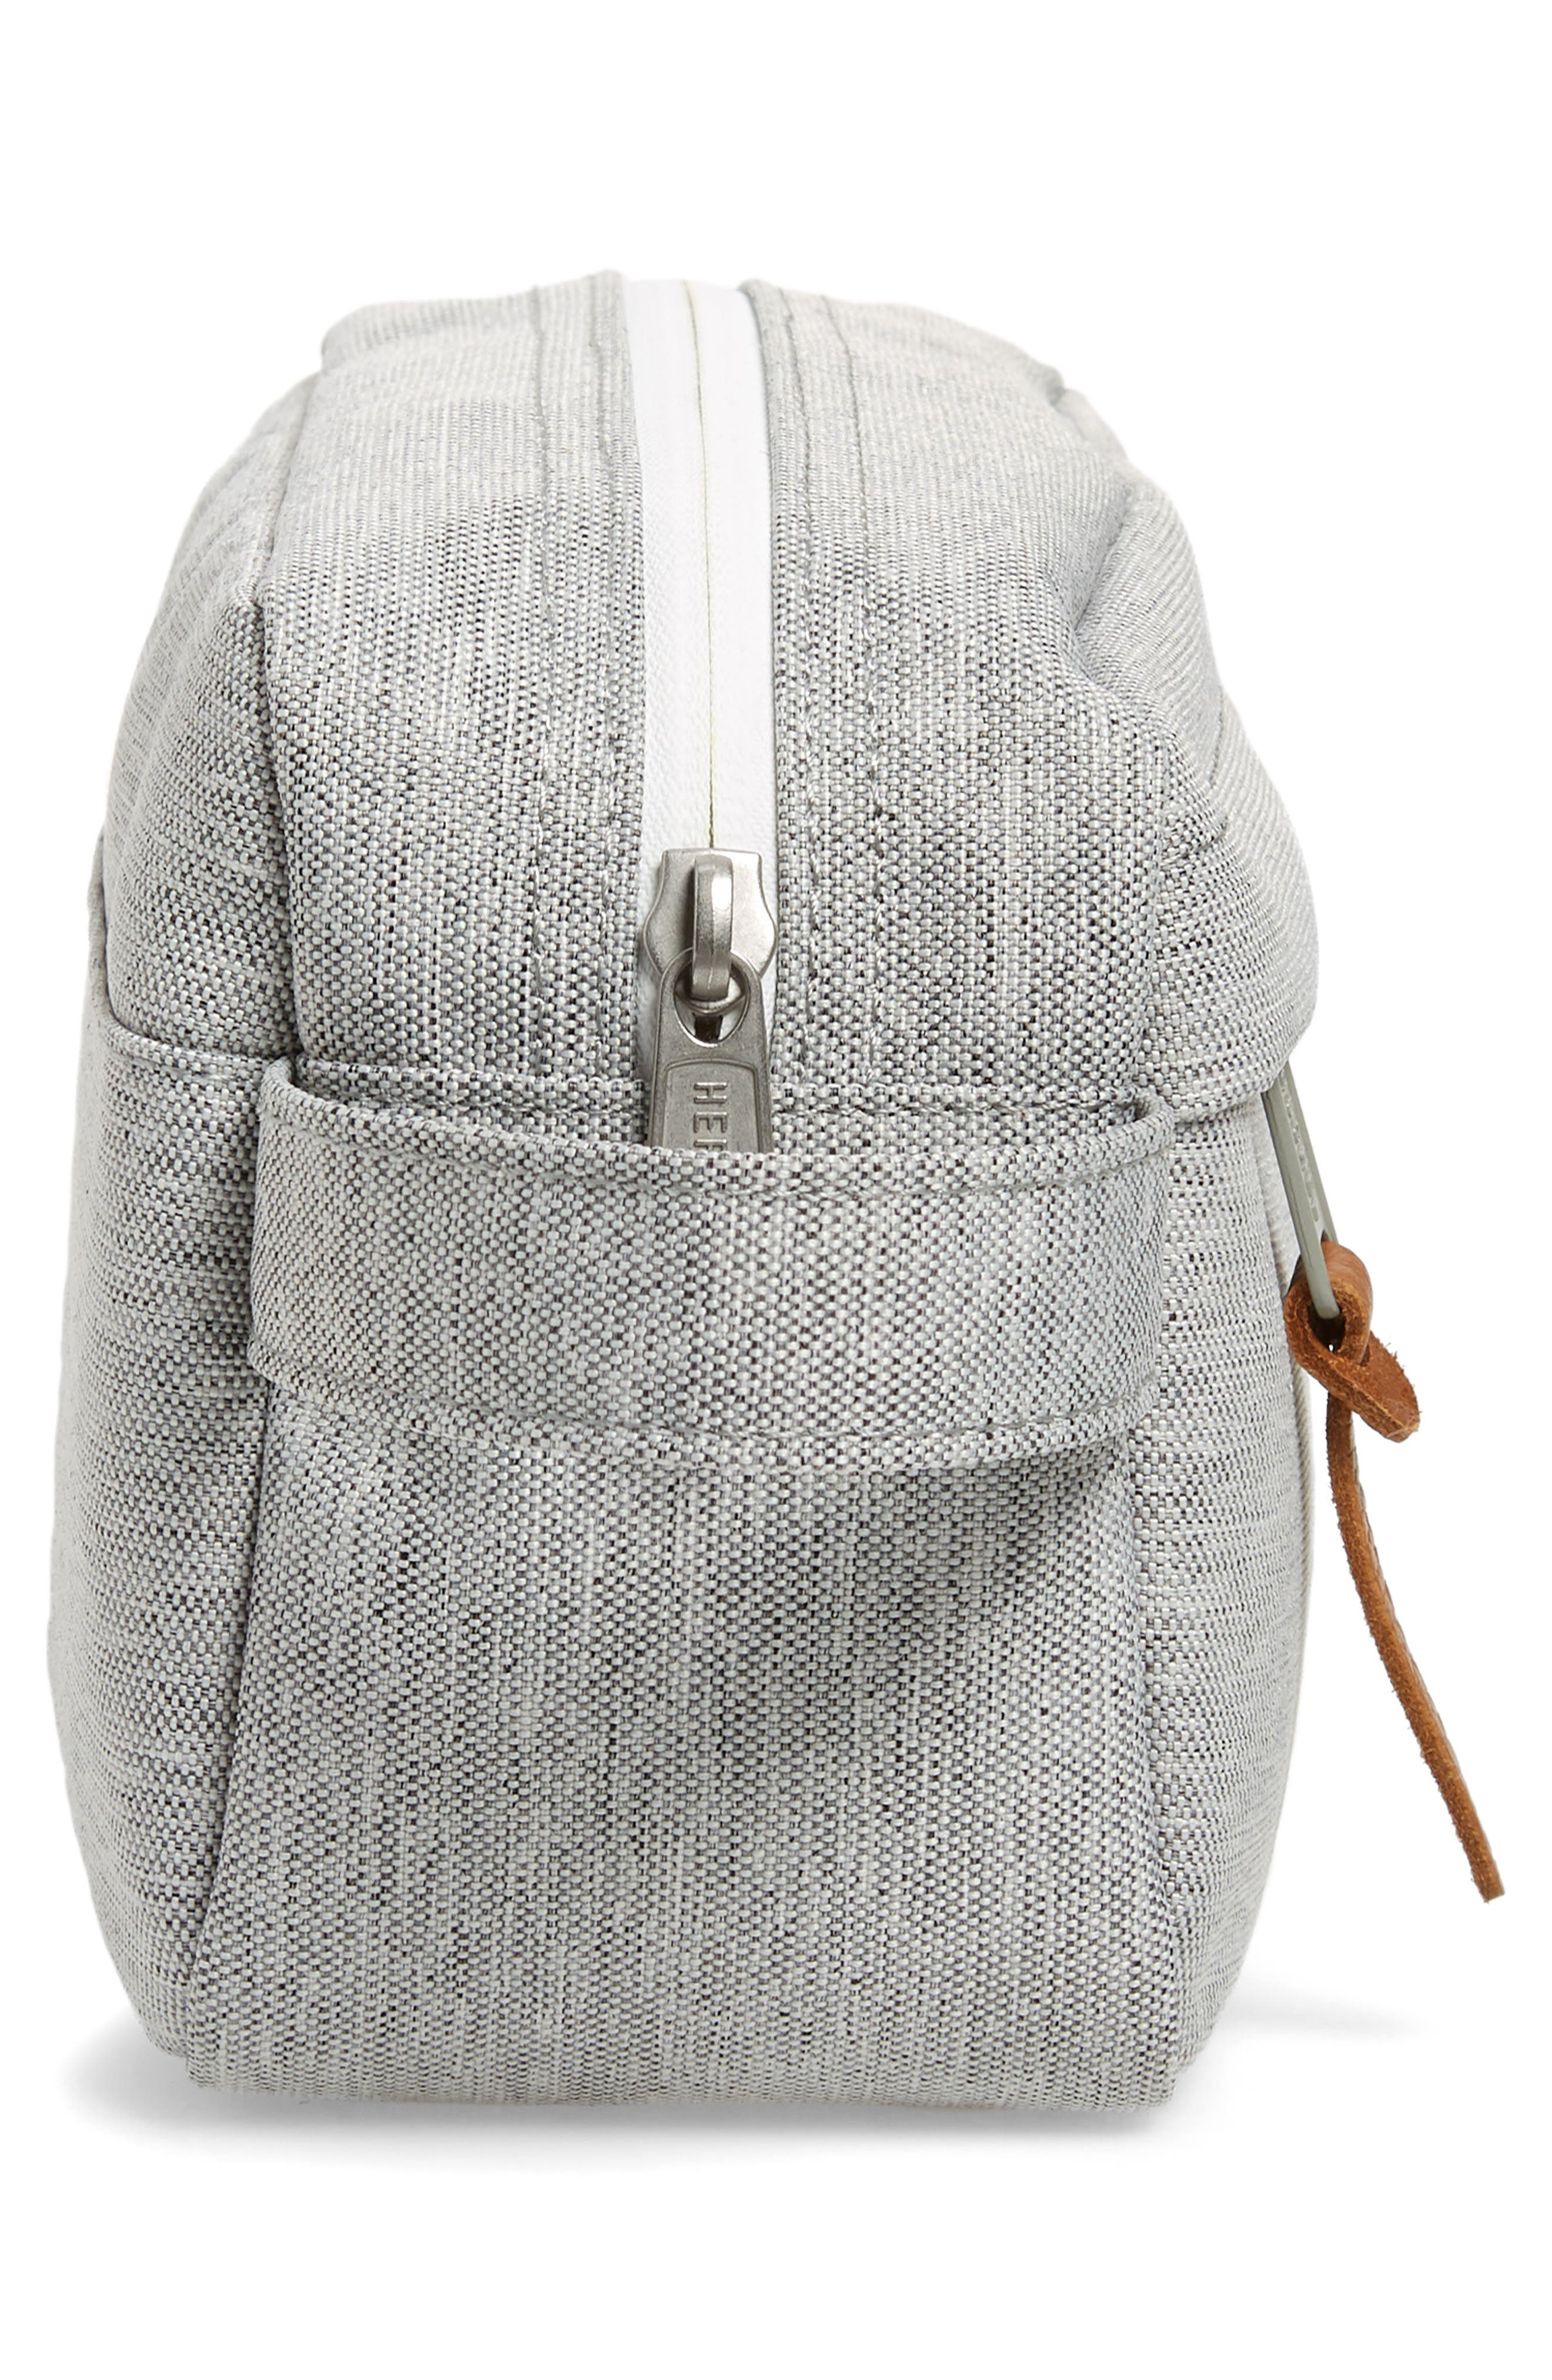 Chapter Carry-On Travel Kit,                             Alternate thumbnail 5, color,                             Light Grey Crosshatch